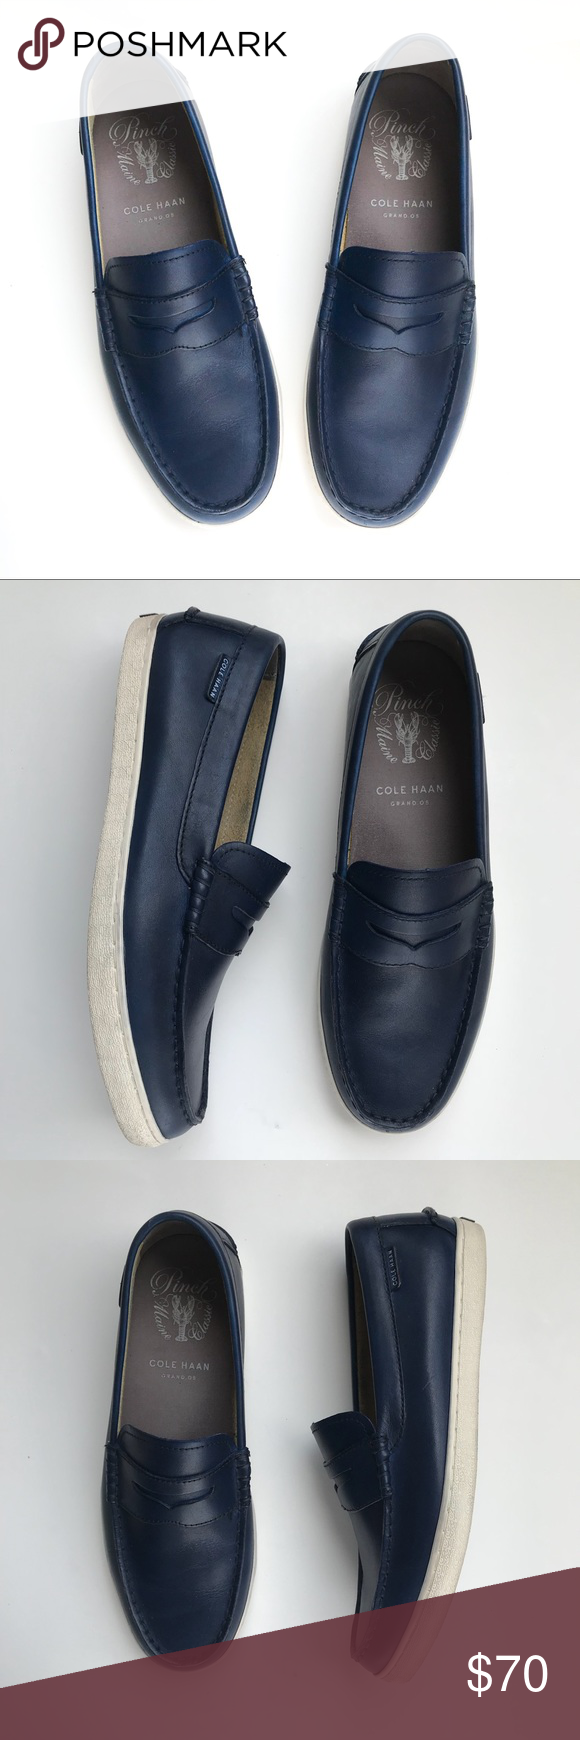 7d8e4331473 Cole Haan Grand OS Pinch Maine Classic Loafers 10M Cole Haan Grand OS Pinch  Maine Classic